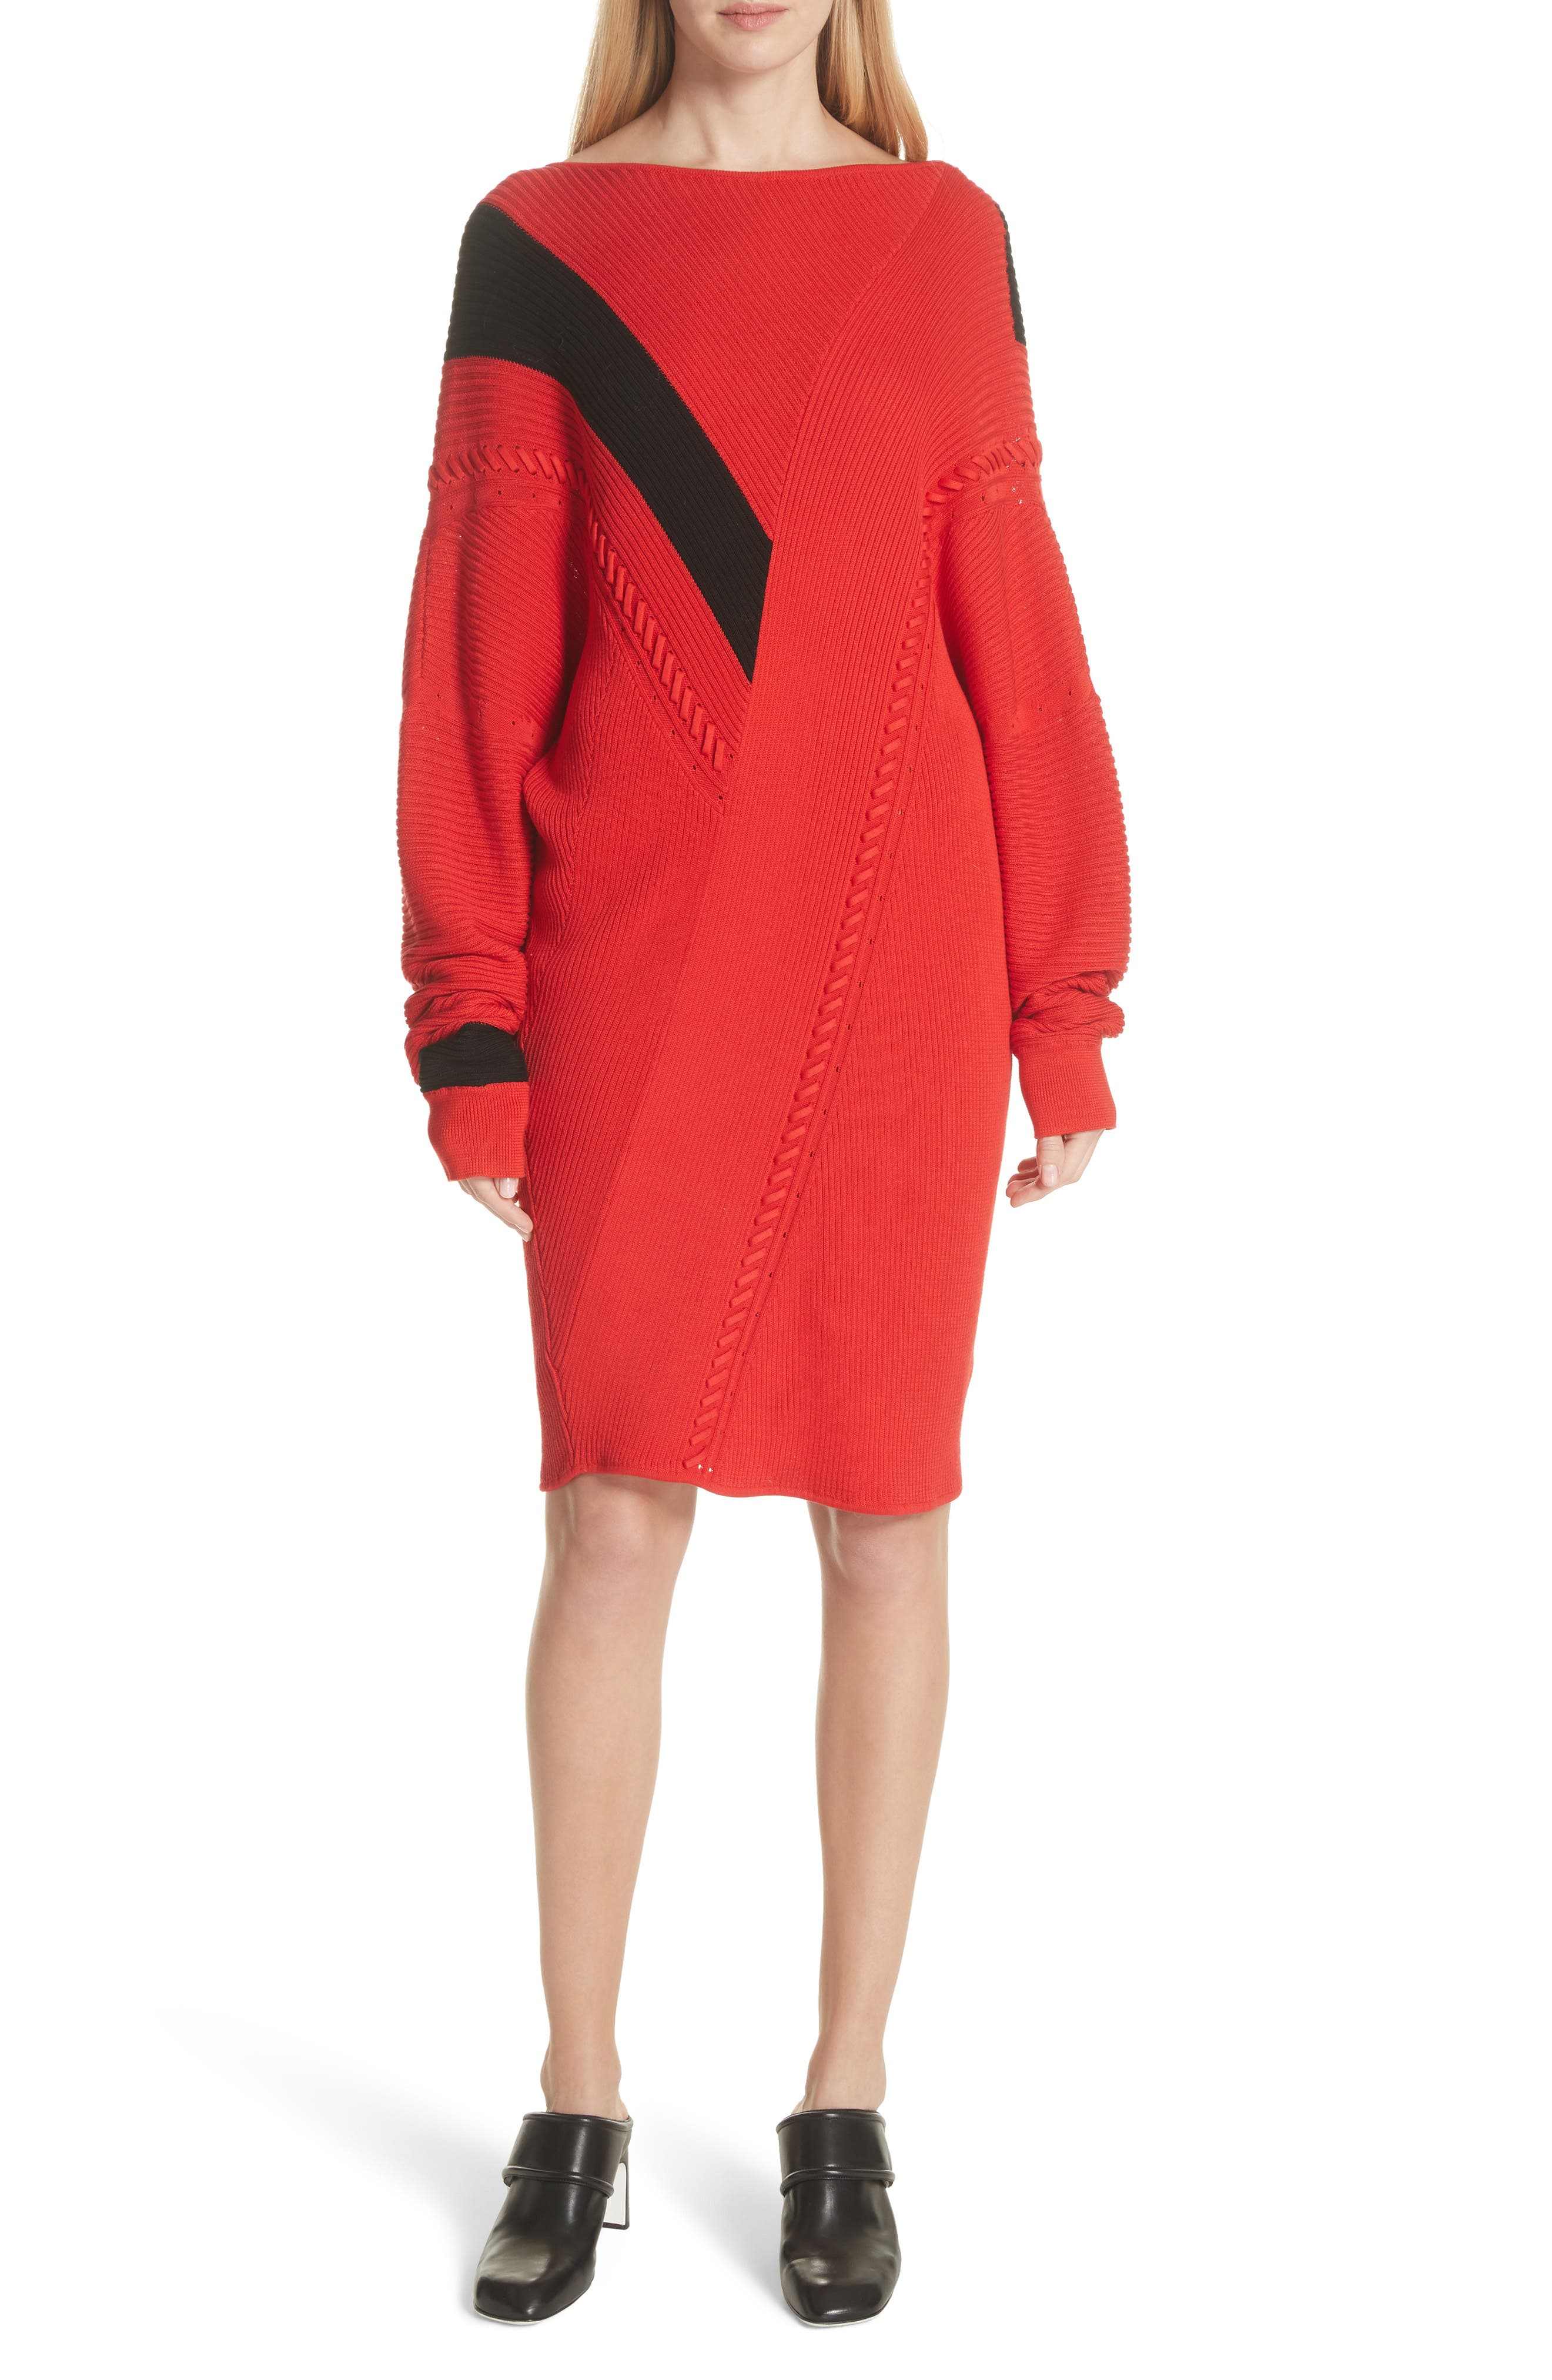 Cricket Reversible Sweater Dress,                         Main,                         color, Red